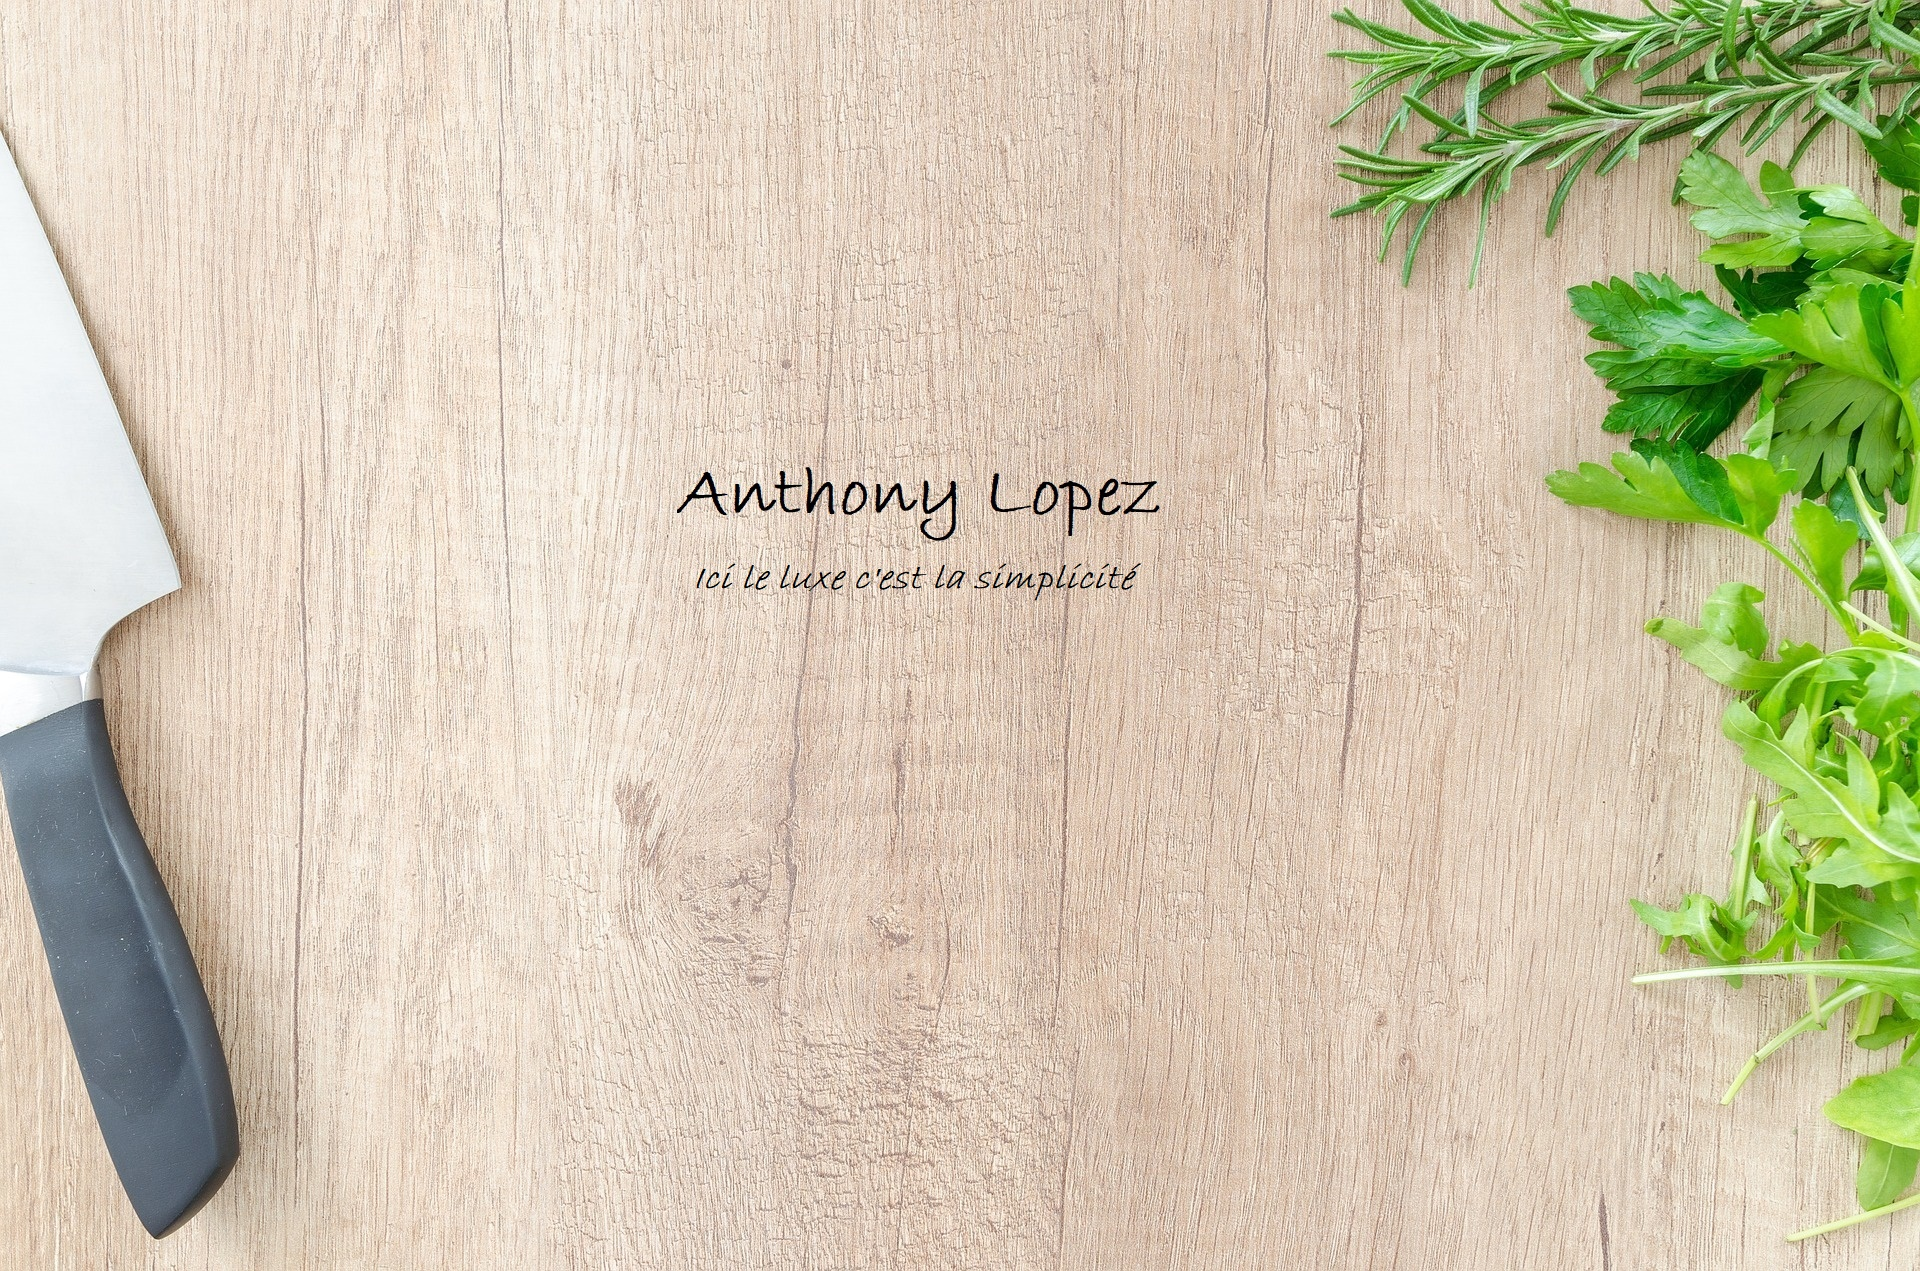 Anthony Lopez